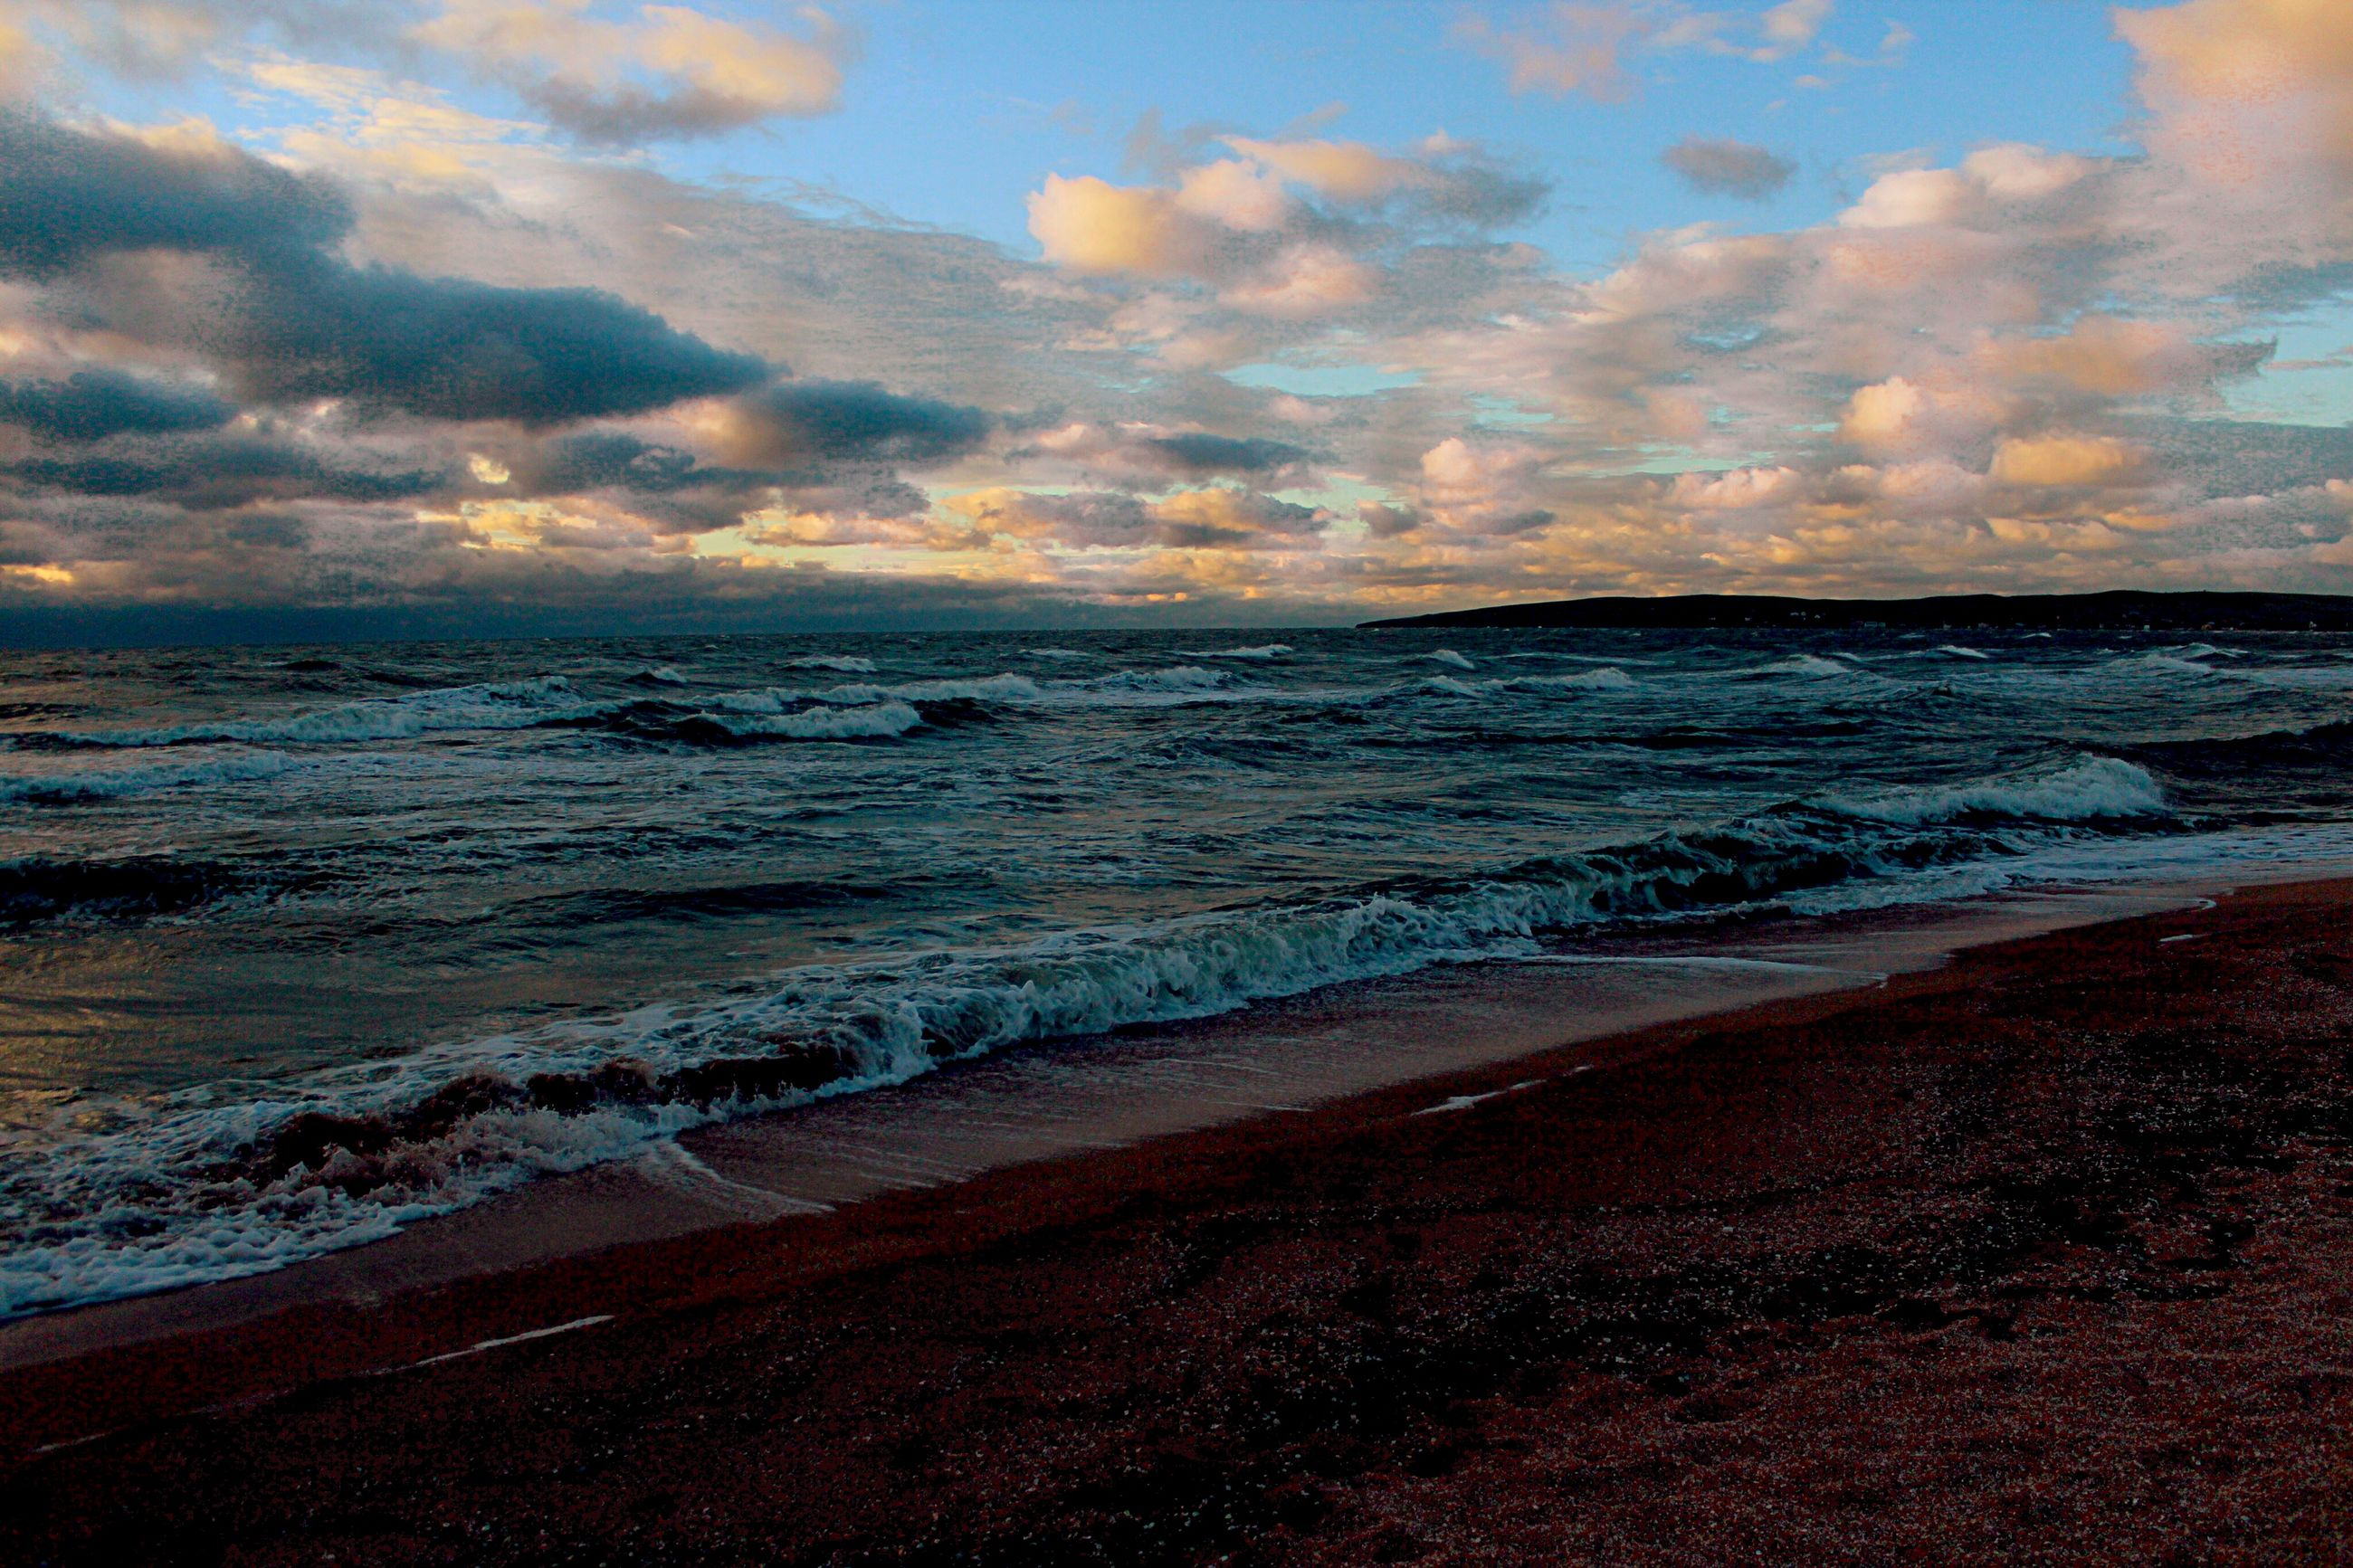 sea, horizon over water, beach, water, sky, scenics, tranquil scene, shore, beauty in nature, tranquility, cloud - sky, wave, sunset, nature, sand, idyllic, cloudy, surf, cloud, coastline